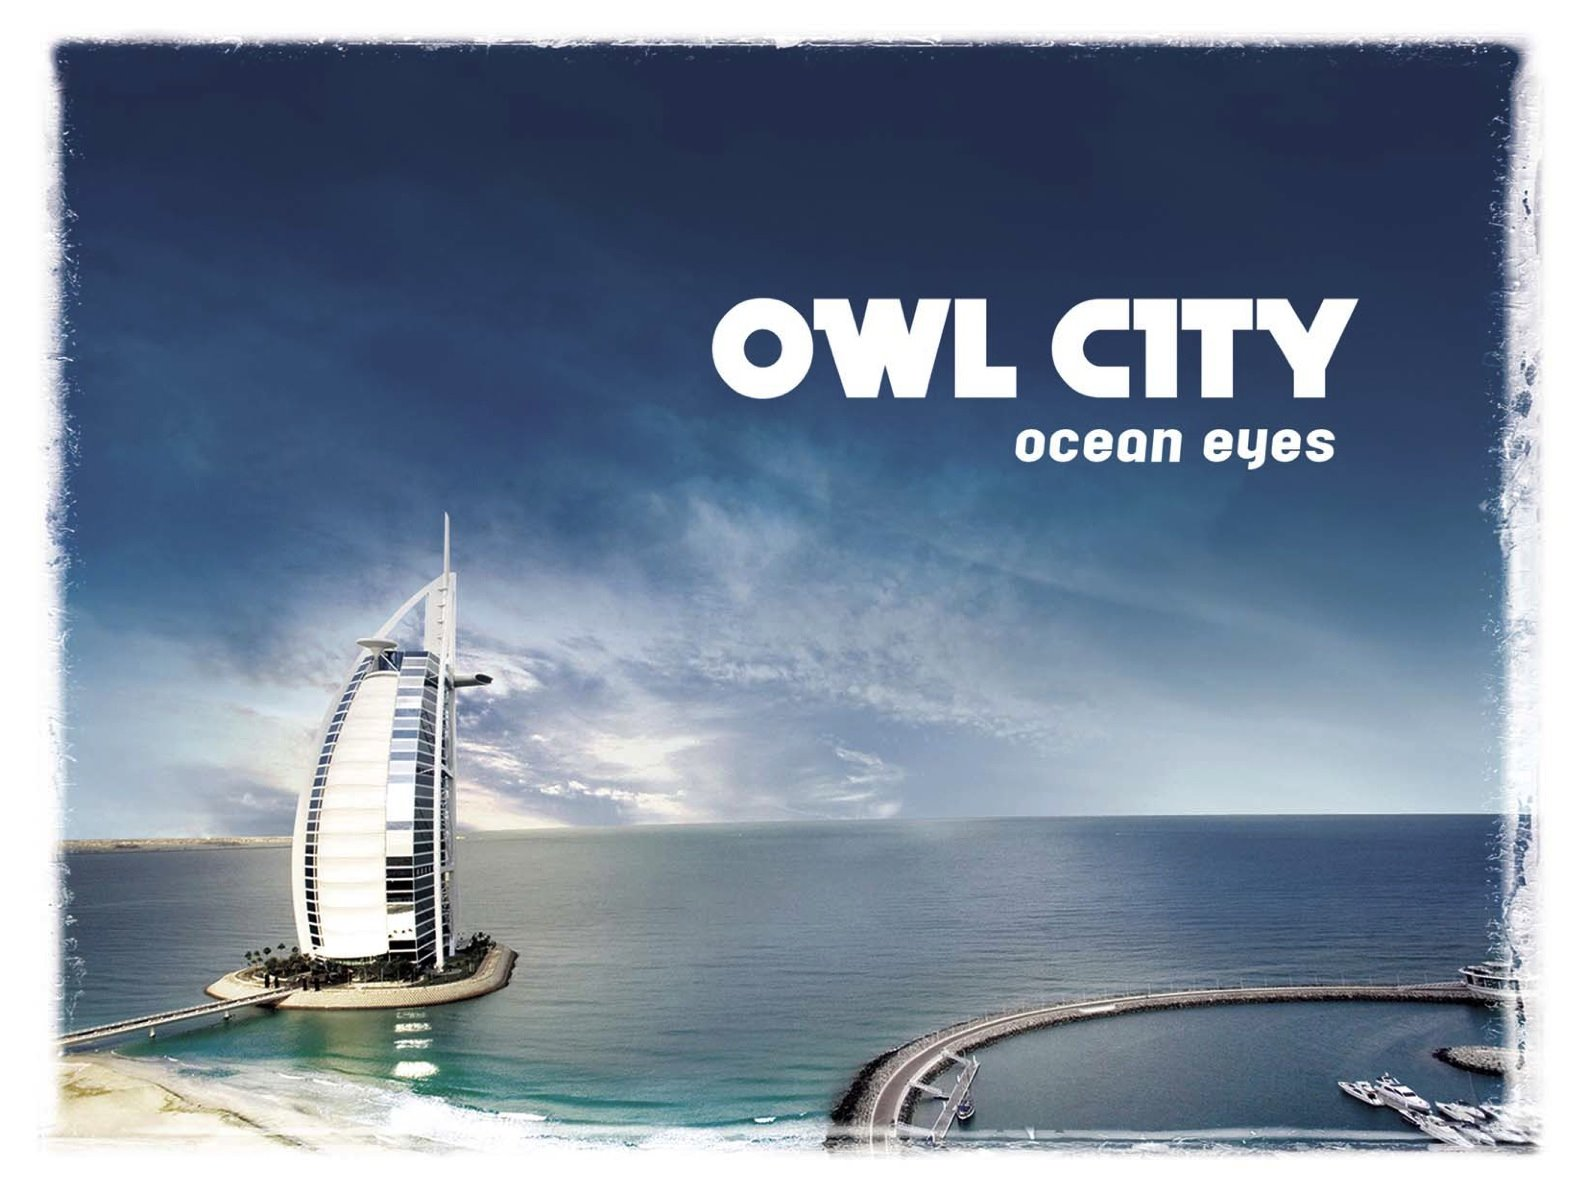 Owl+city+ocean+eyes+cover